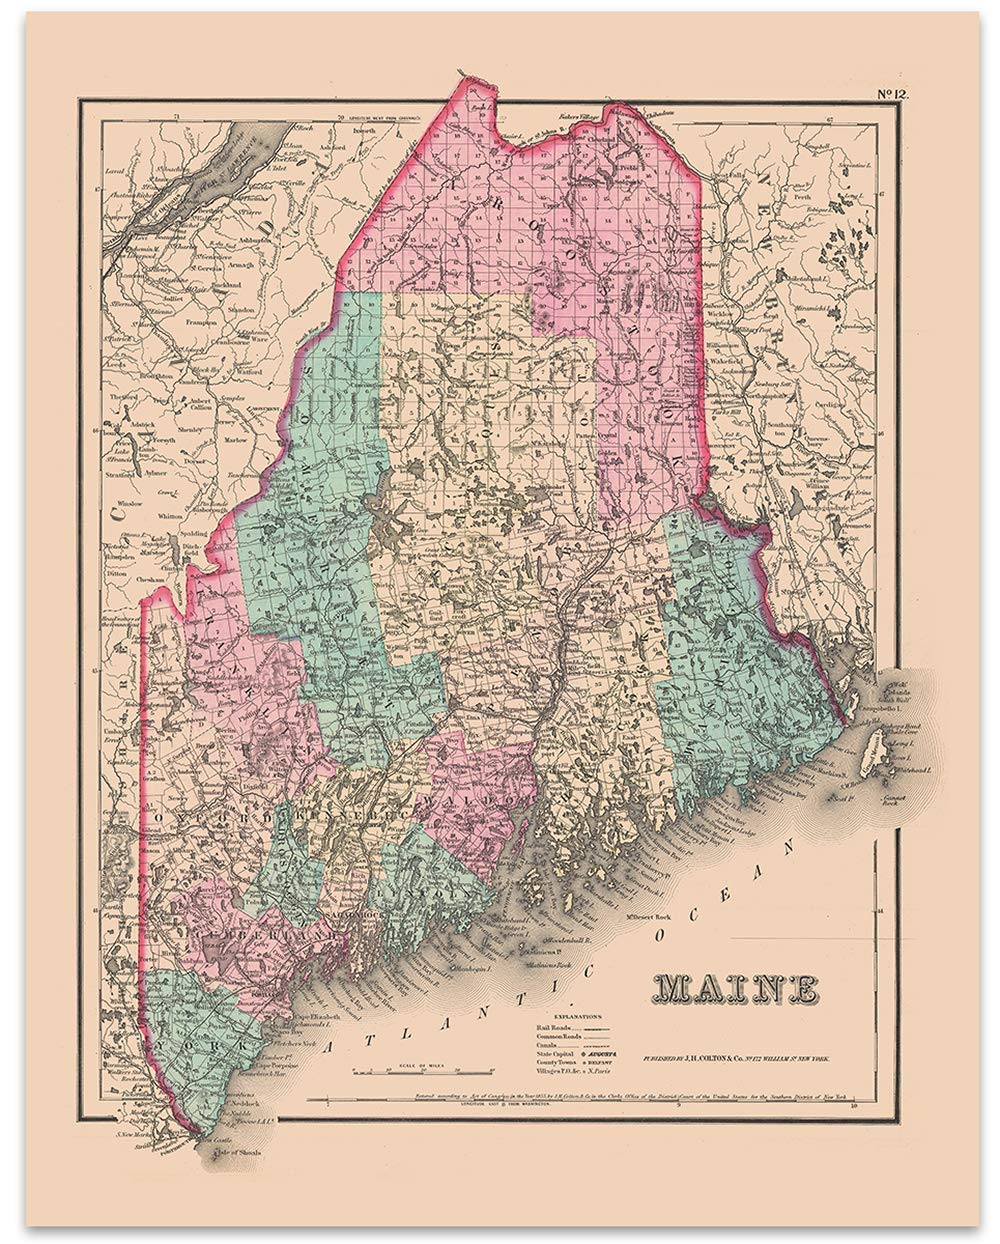 image relating to Printable Map of Maine called : Maine Basic Map Circa 1855-11 x 14 Unframed